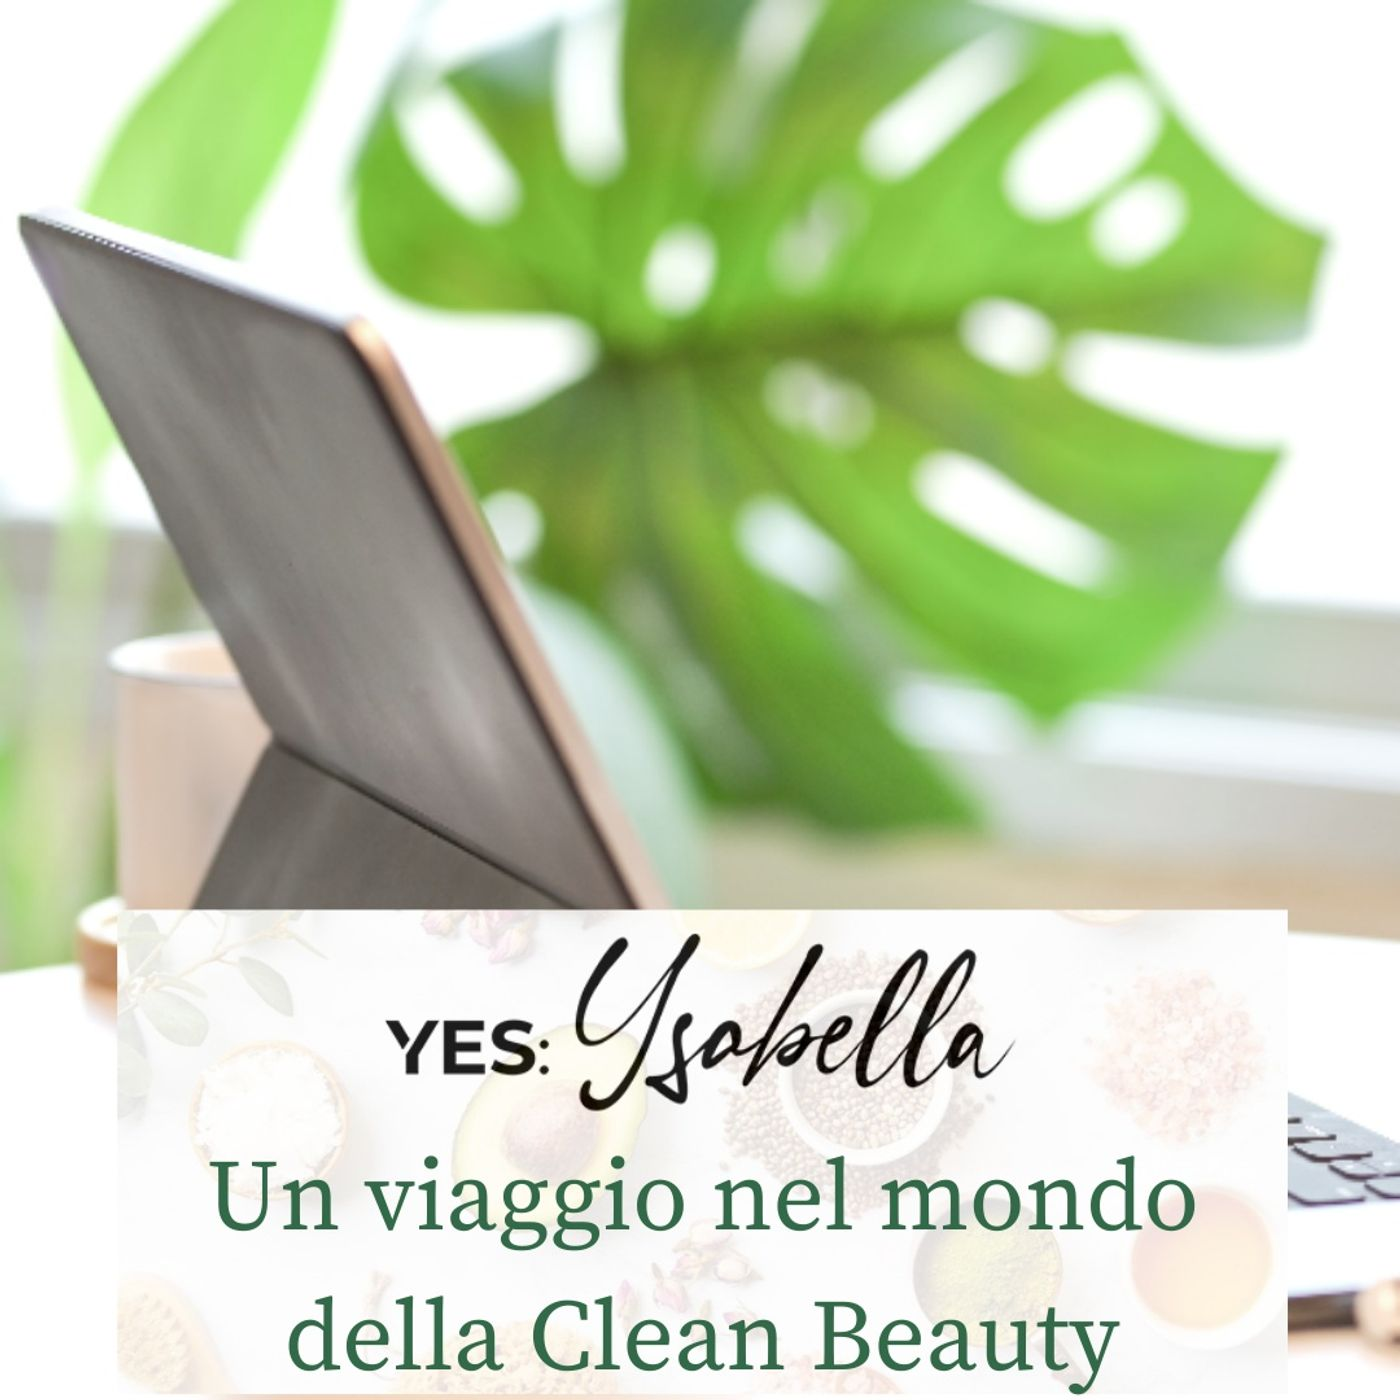 Ep. 28. Un viaggio nel mondo del Clean Beauty con Yes:Ysabella (ft. Angela Stillo e Beatrice Ambra Zanotto)